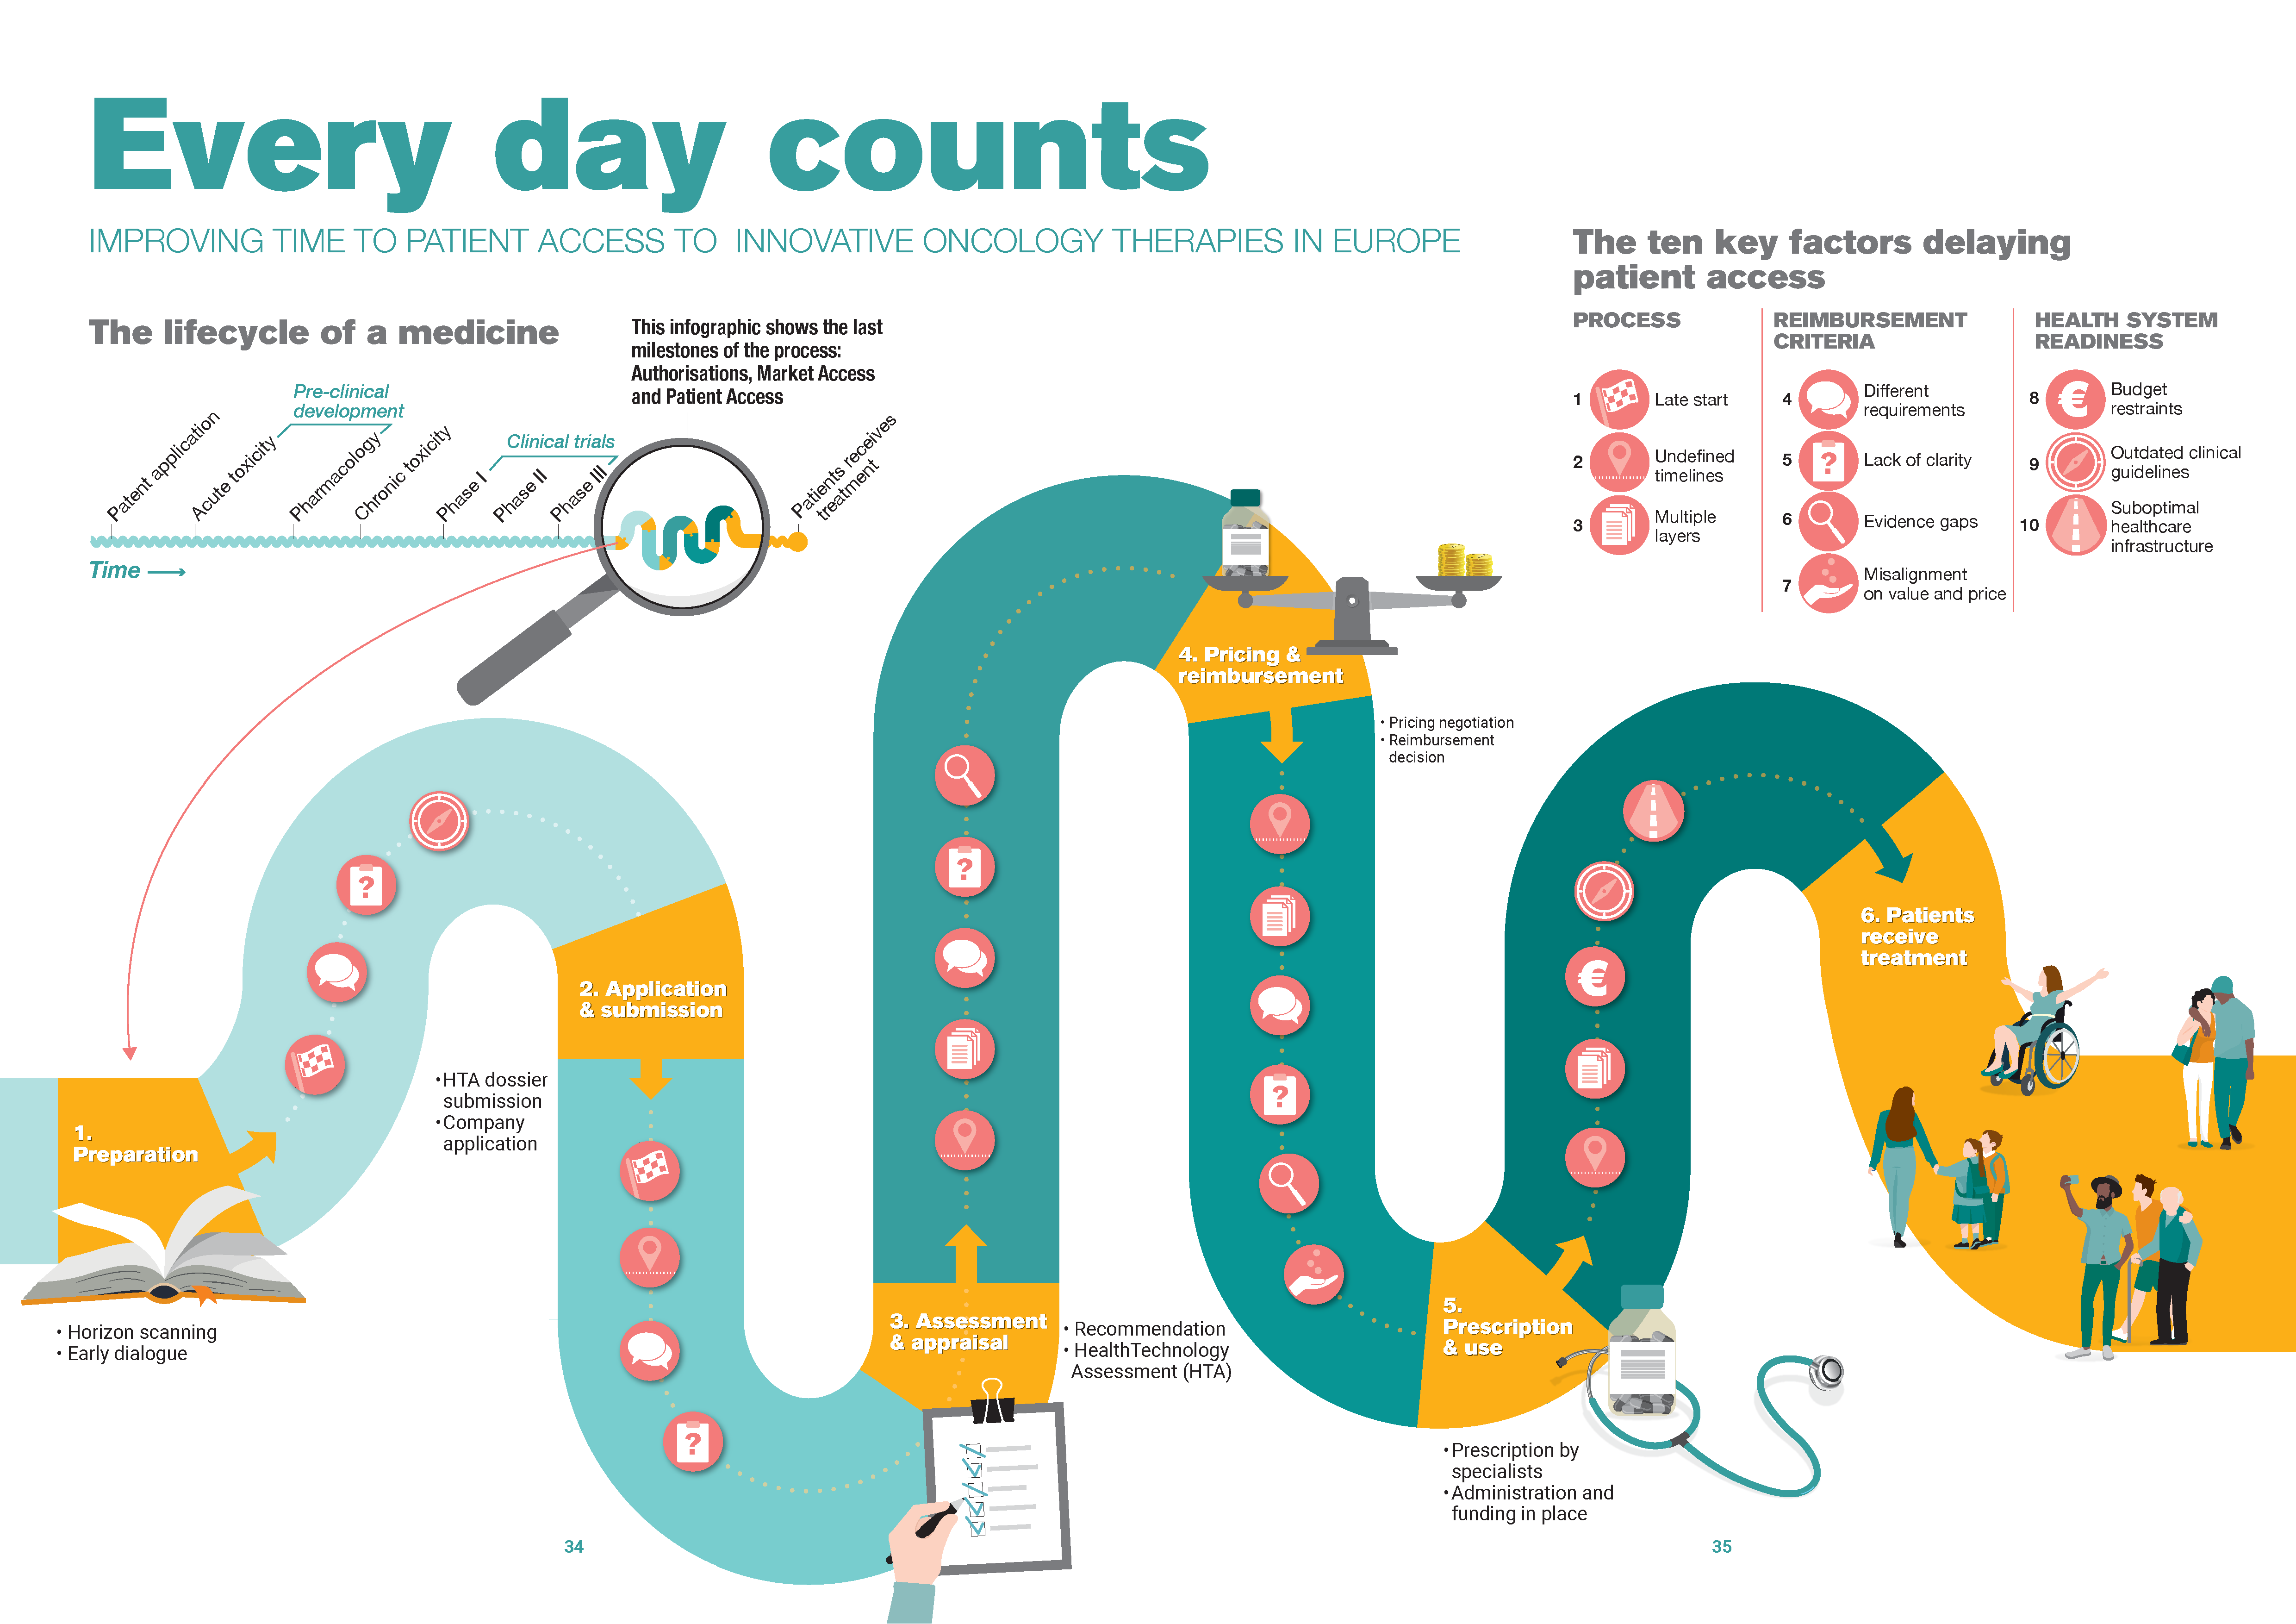 Infographic-every-day-counts-improving-time-to-patient-access-to-innovative-oncology-therapies-in-europe_from EFPIA_and_Vintura2